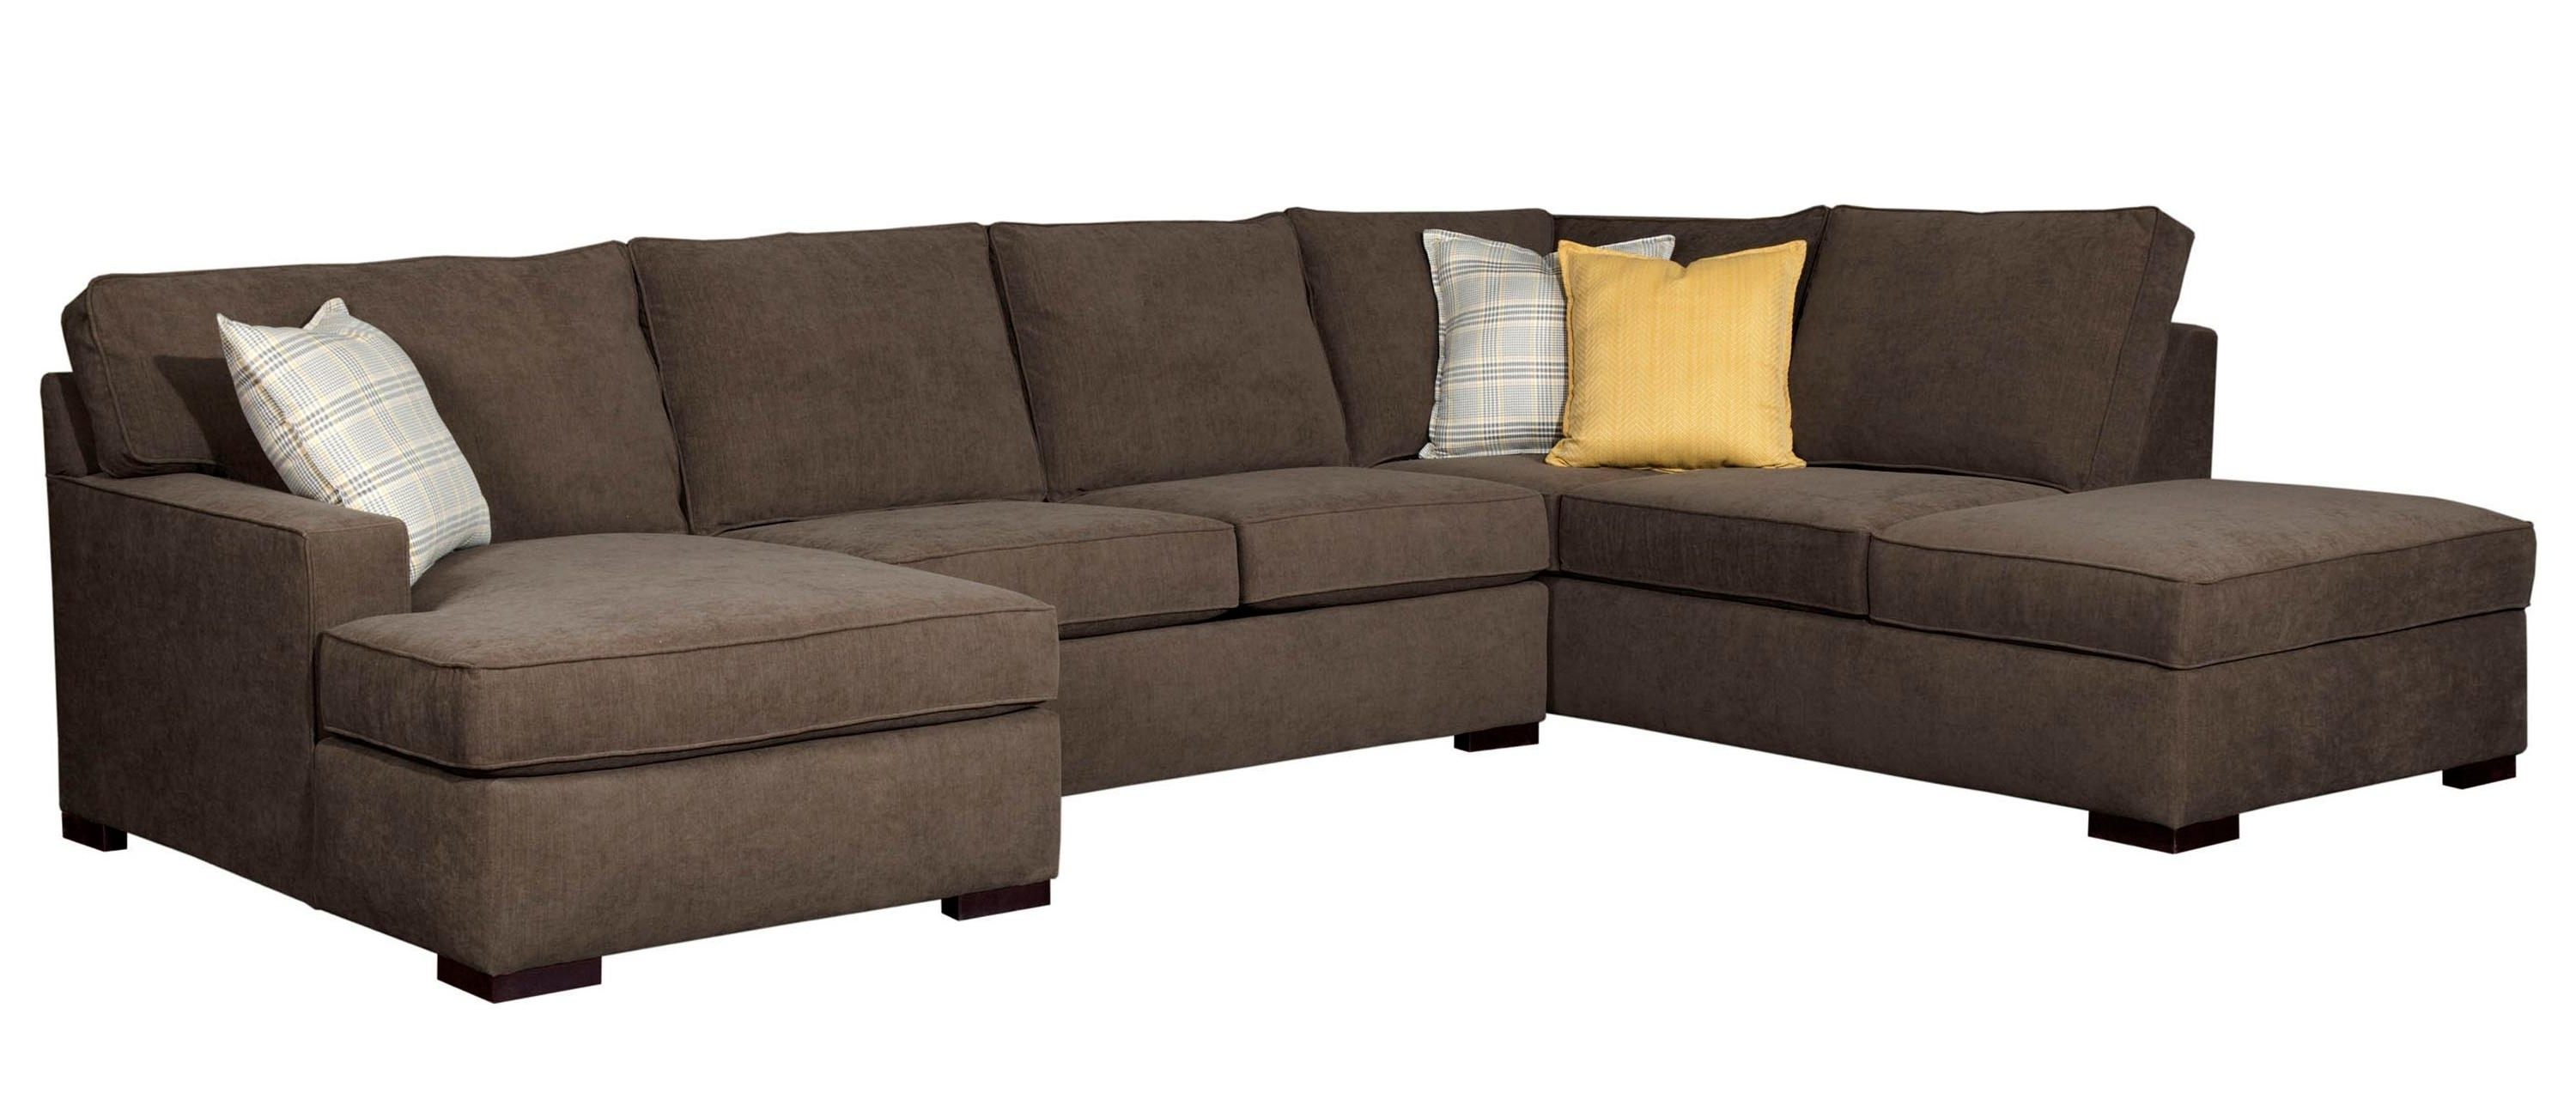 Well Known Raphael Contemporary Sectional Sofa With Raf Corner Storage Chaise With Regard To Broyhill Sectional Sofas (View 2 of 15)